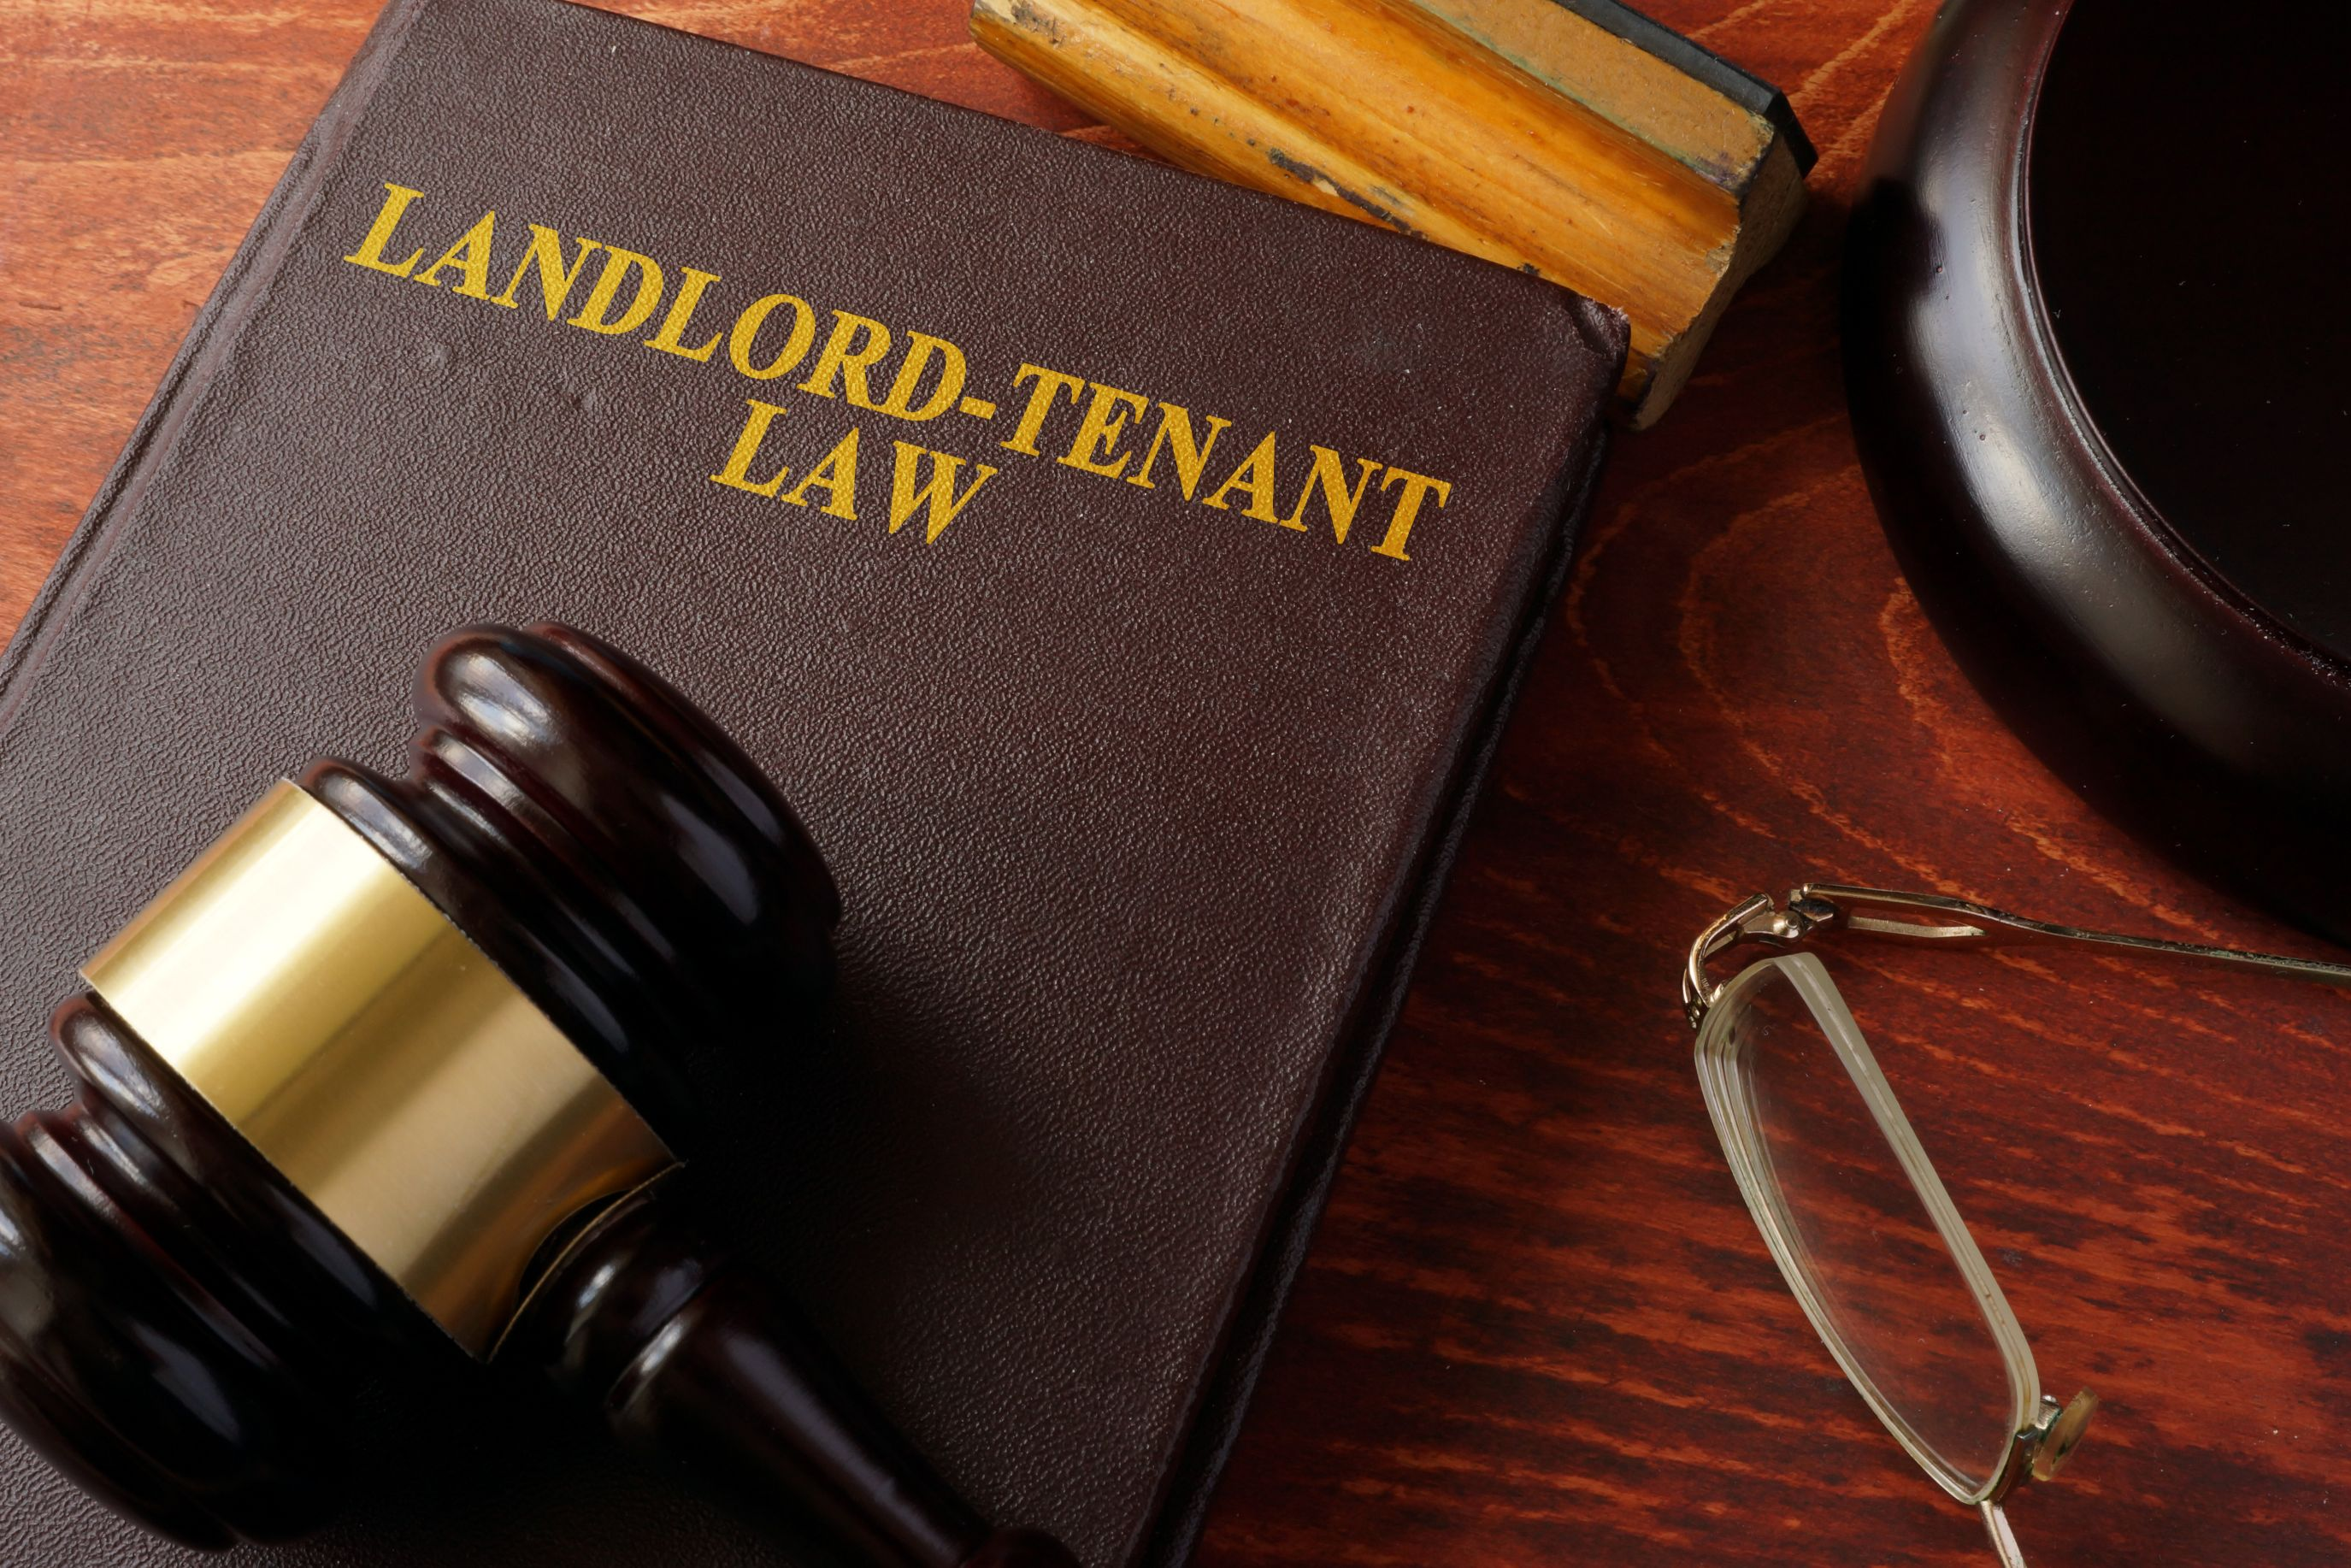 Attorneys & Lawyers - Landlord/Tenant